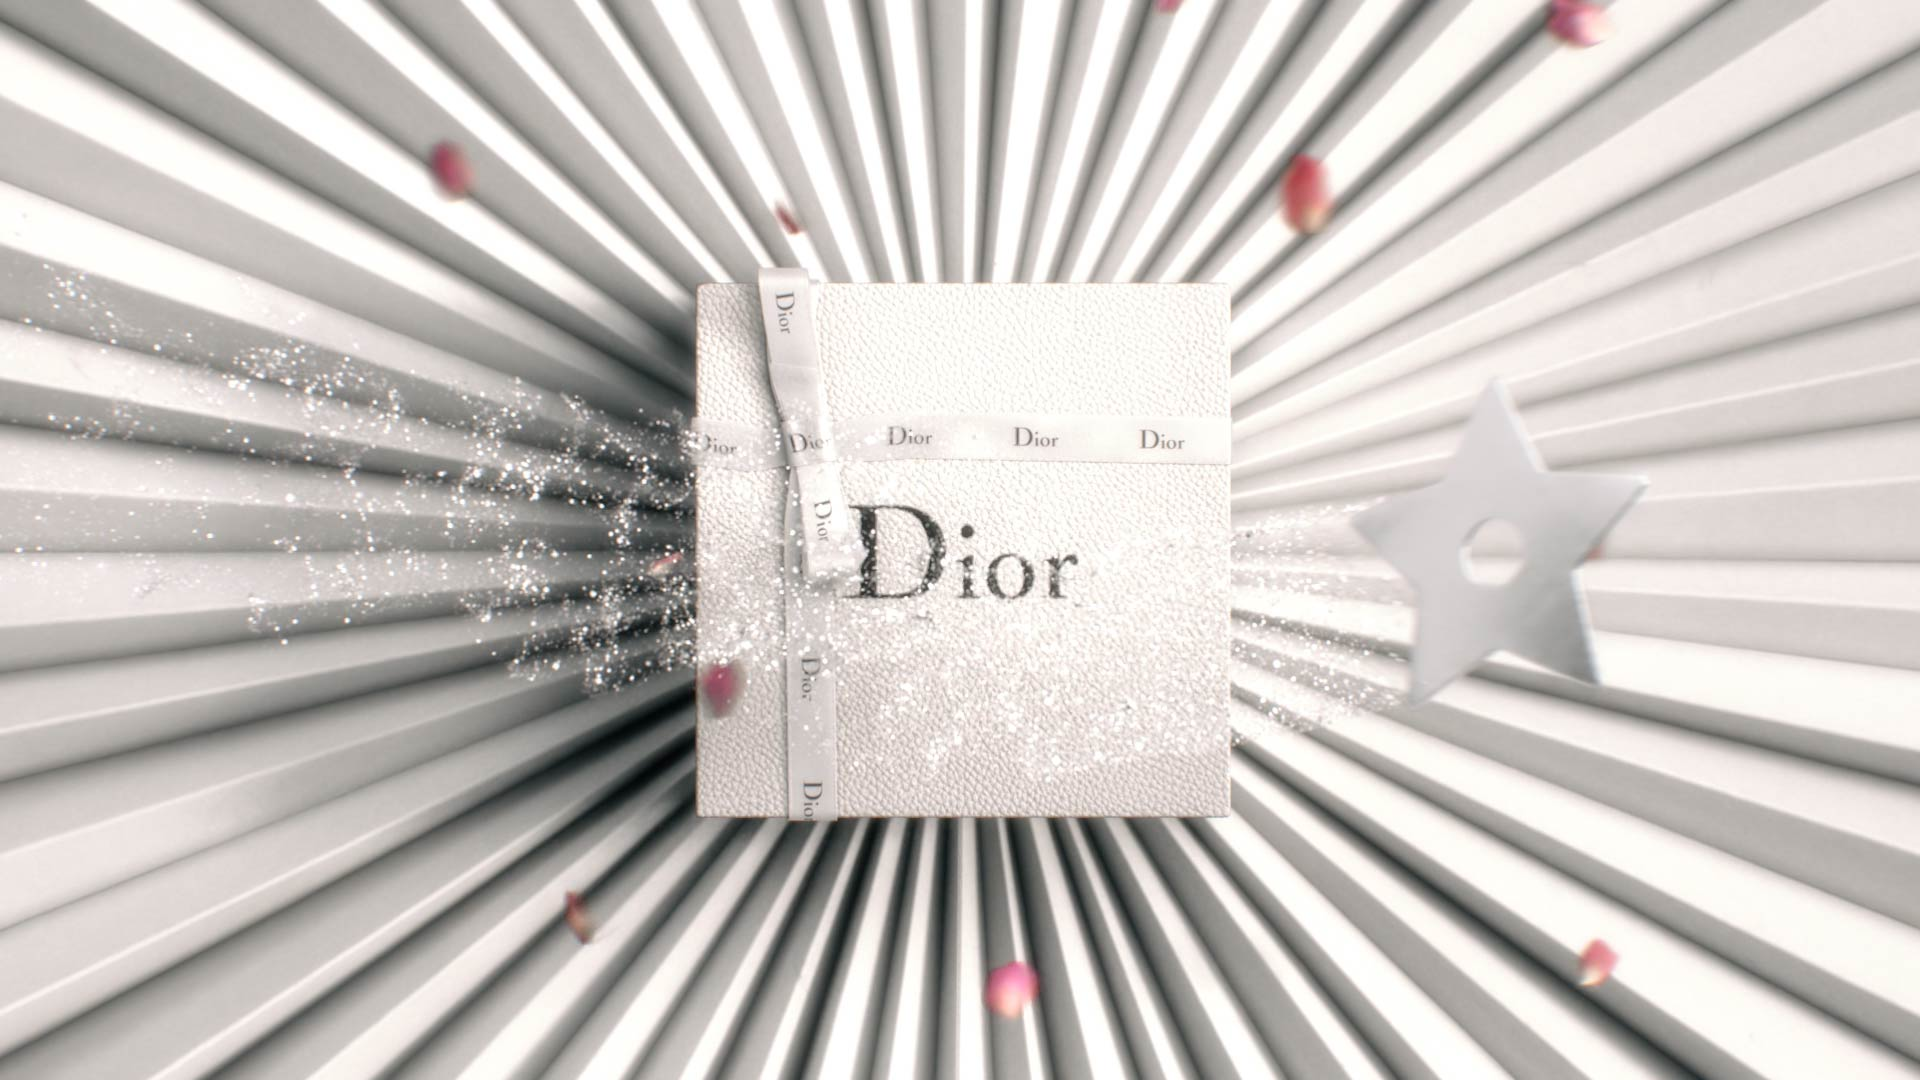 Magical silver star flying over a Dior gift box